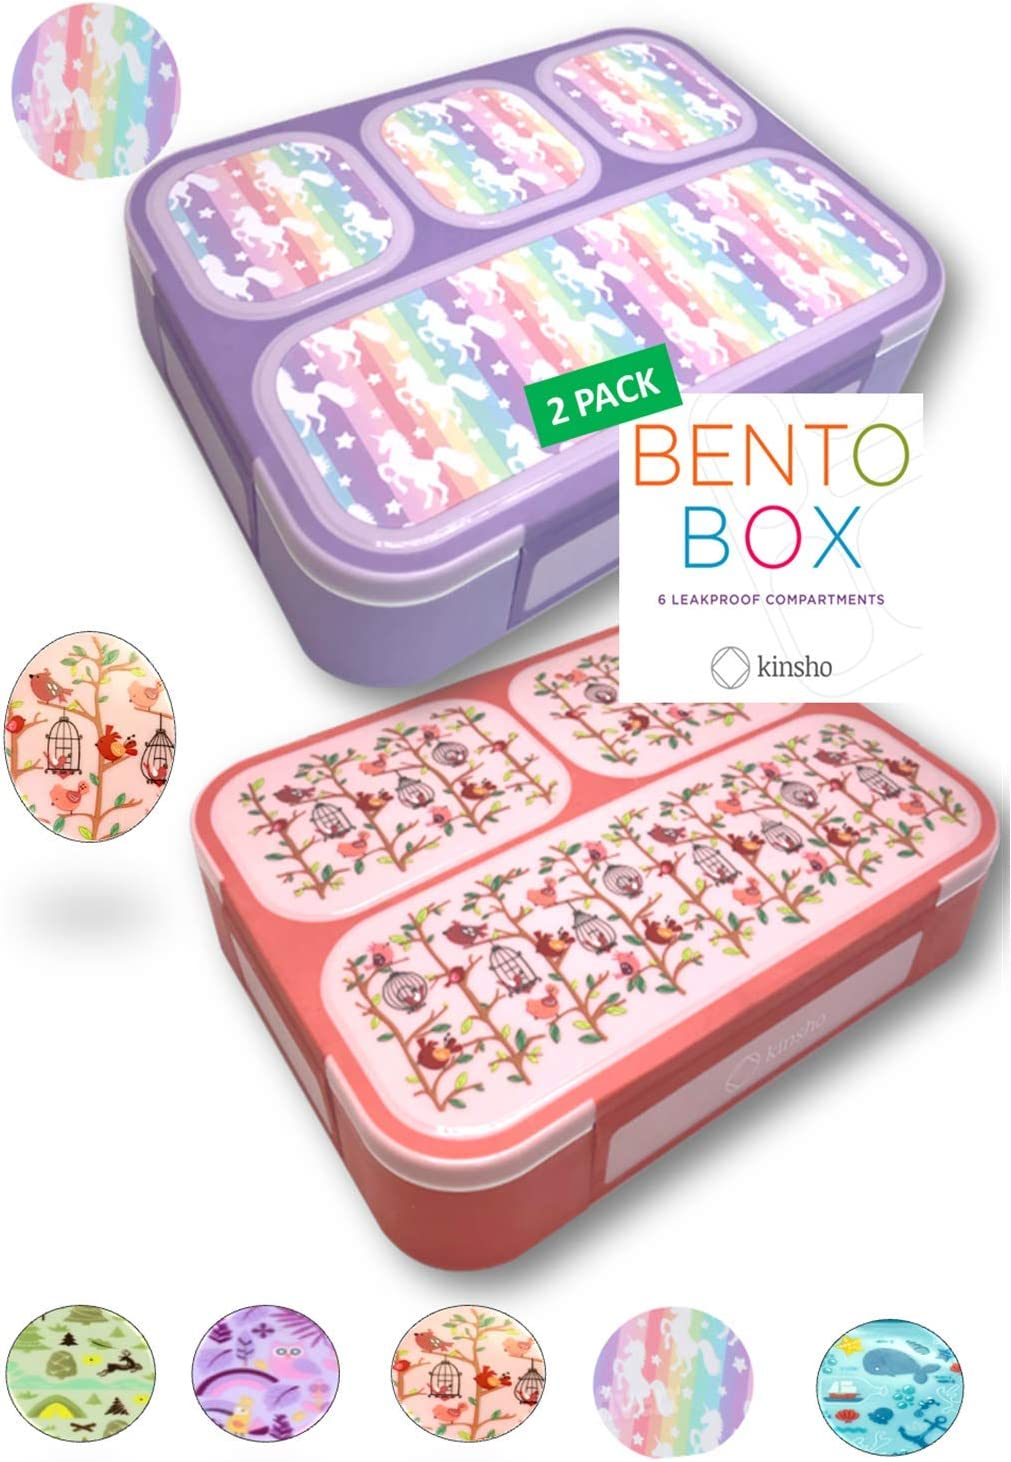 Ice Pack Included Unicorn Bento Lunch Box and Bag Set for Girls Toddlers Cute Matching Pink Boxes with Unicorns for Daycare Pre-School Gift